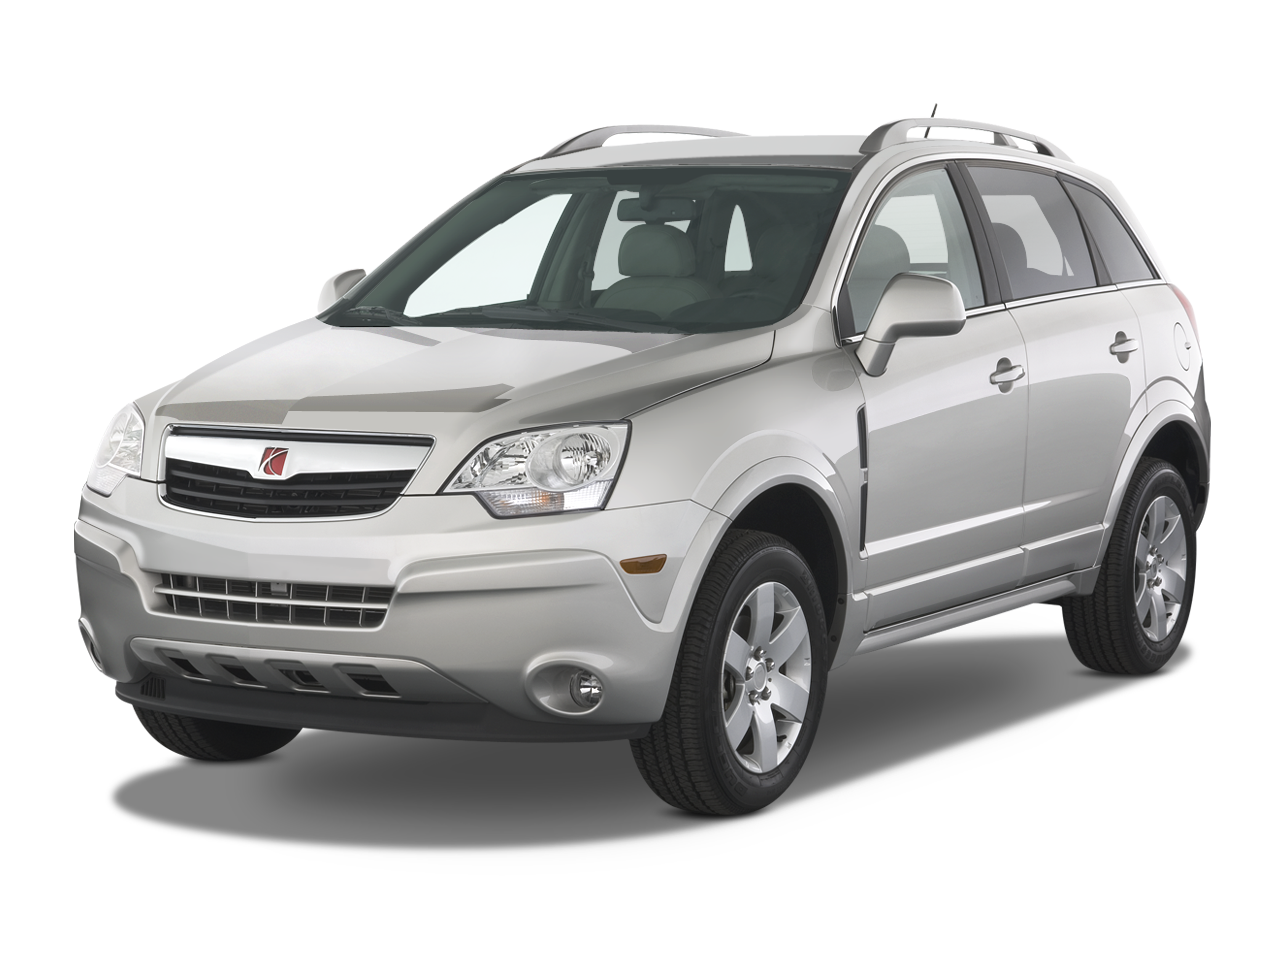 2009 saturn vue green line two mode hybrid saturn hybrid. Black Bedroom Furniture Sets. Home Design Ideas